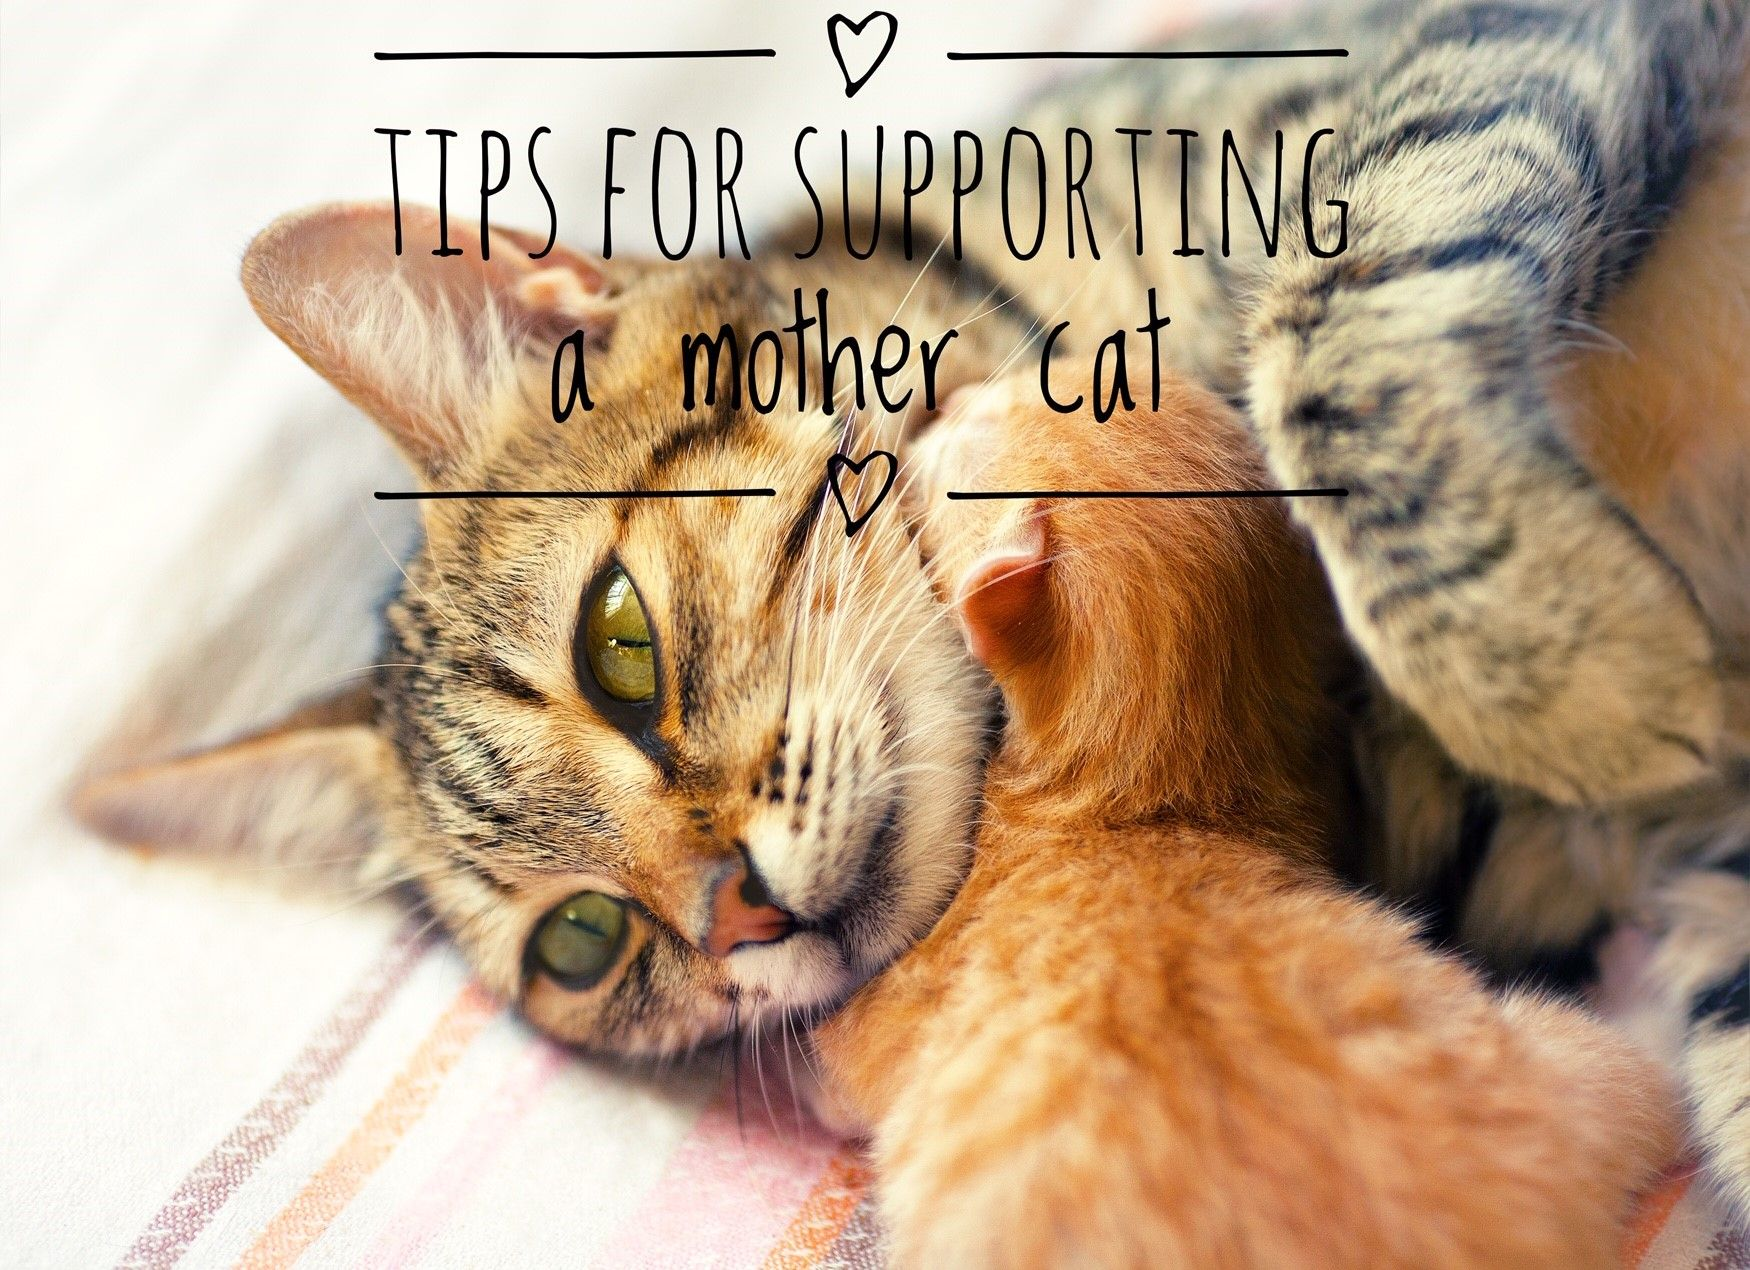 Tips For Supporting A Mother Cat Mother Cat Cats Kittens